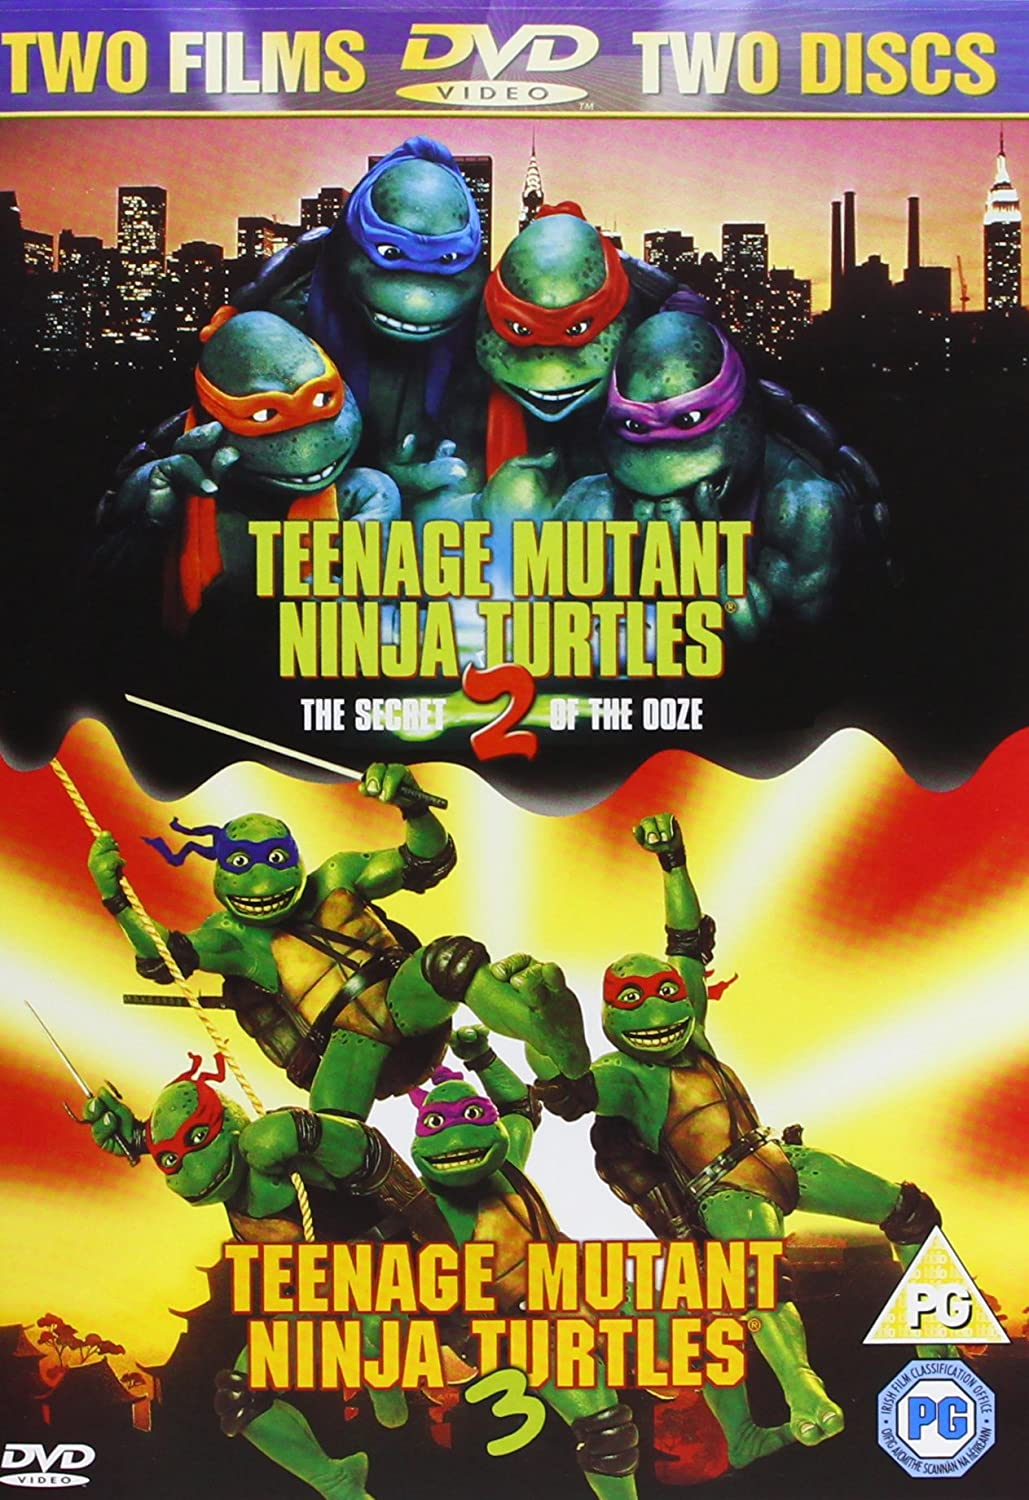 Amazon.com: Teenage Mutant Ninja Turtles 2/Teenage Mutant ...